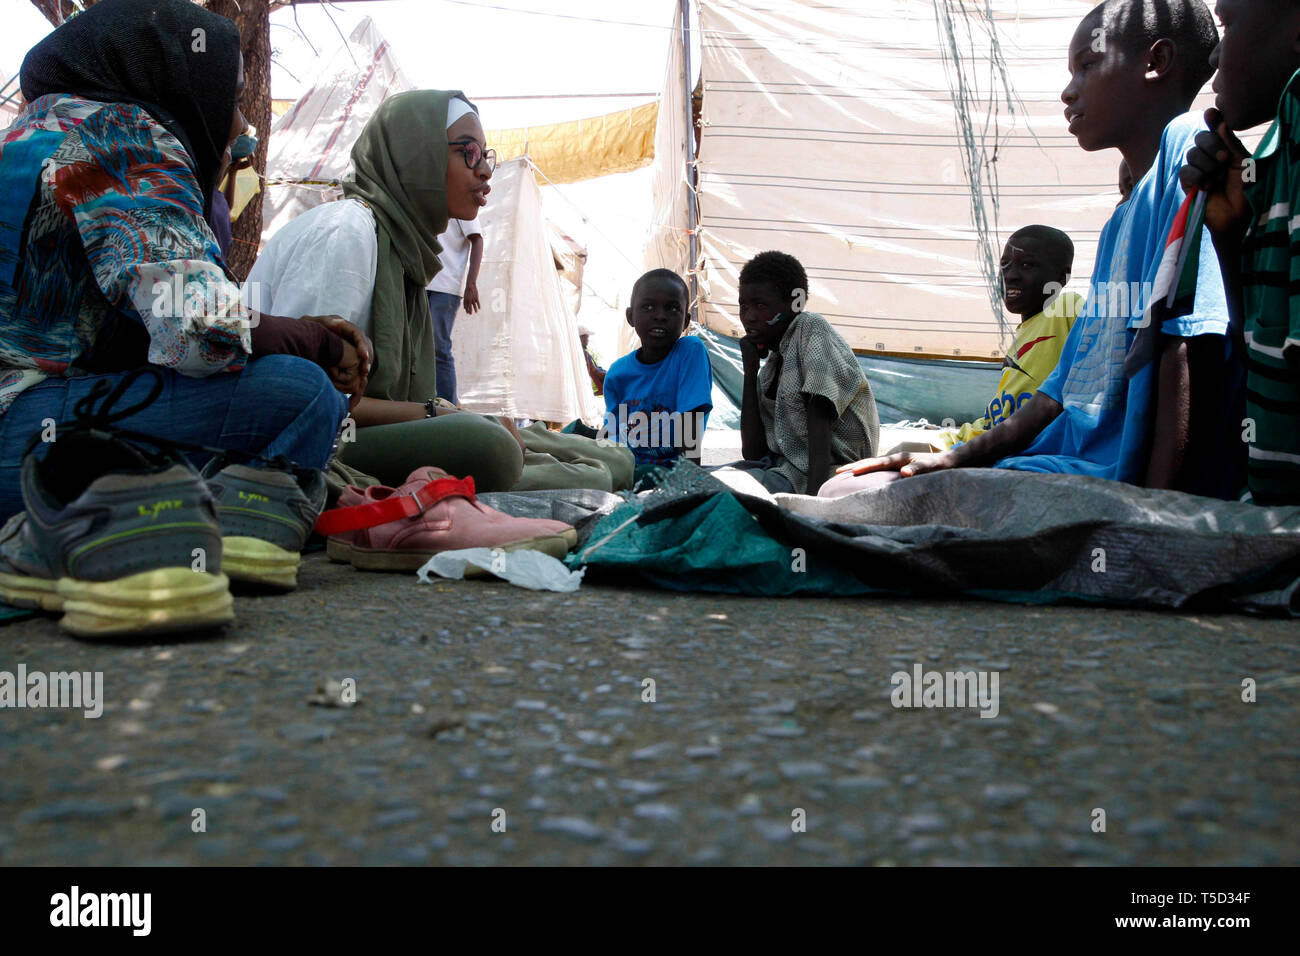 (190424) -- KHARTOUM, April 24, 2019 (Xinhua) -- A protester (2nd L) teaches homeless children in a tent, at the sit-in site in Khartoum, Sudan, April 24, 2019. Sudanese protesters' sit-in continues in front of the army's general headquarters. (Xinhua/Mohamed Khidir) - Stock Image